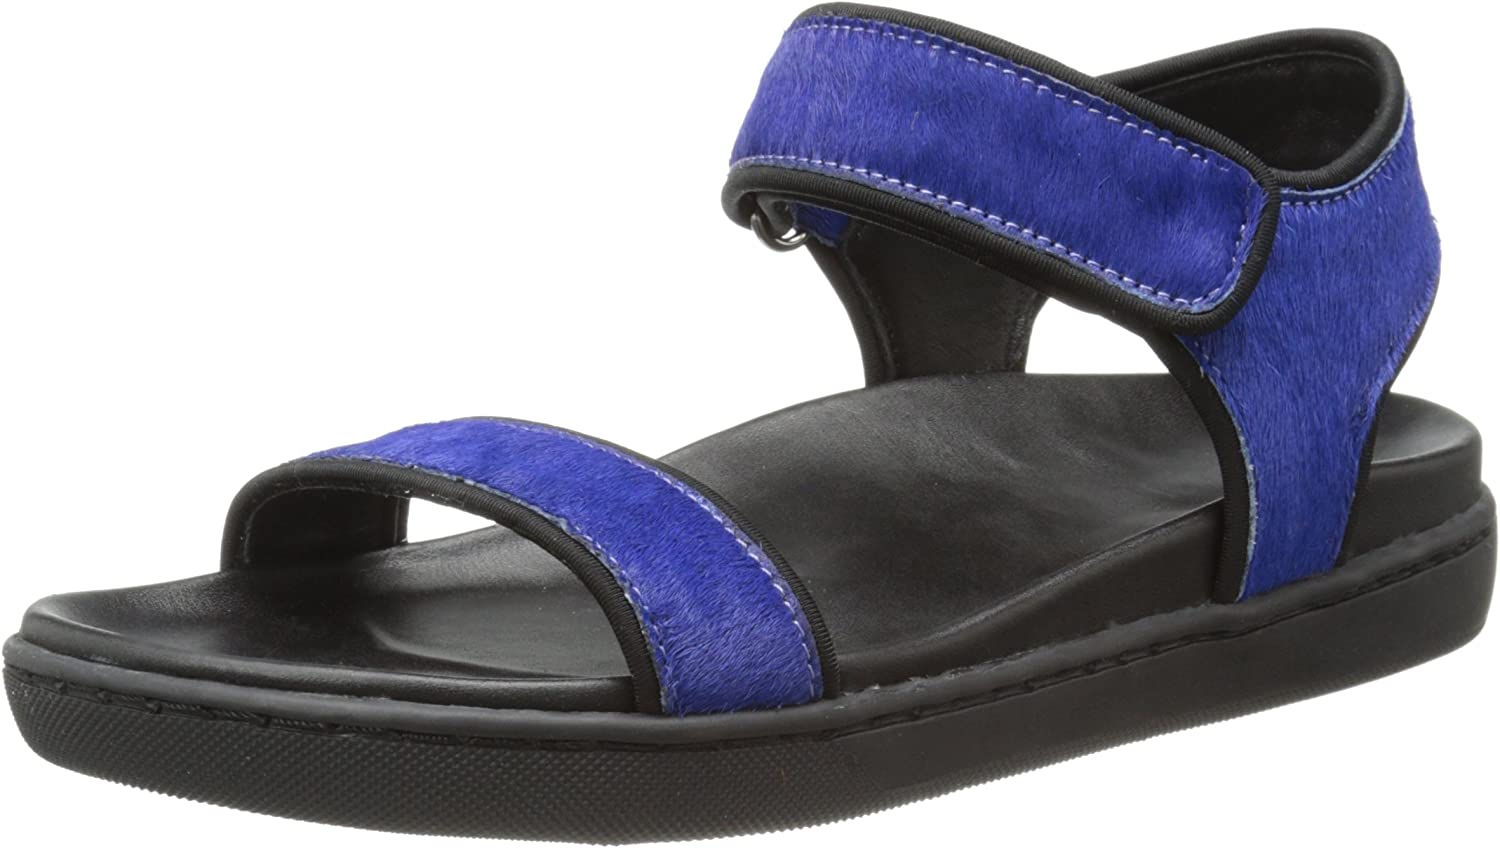 Atelje 71 Women's Astra Dress Sandal